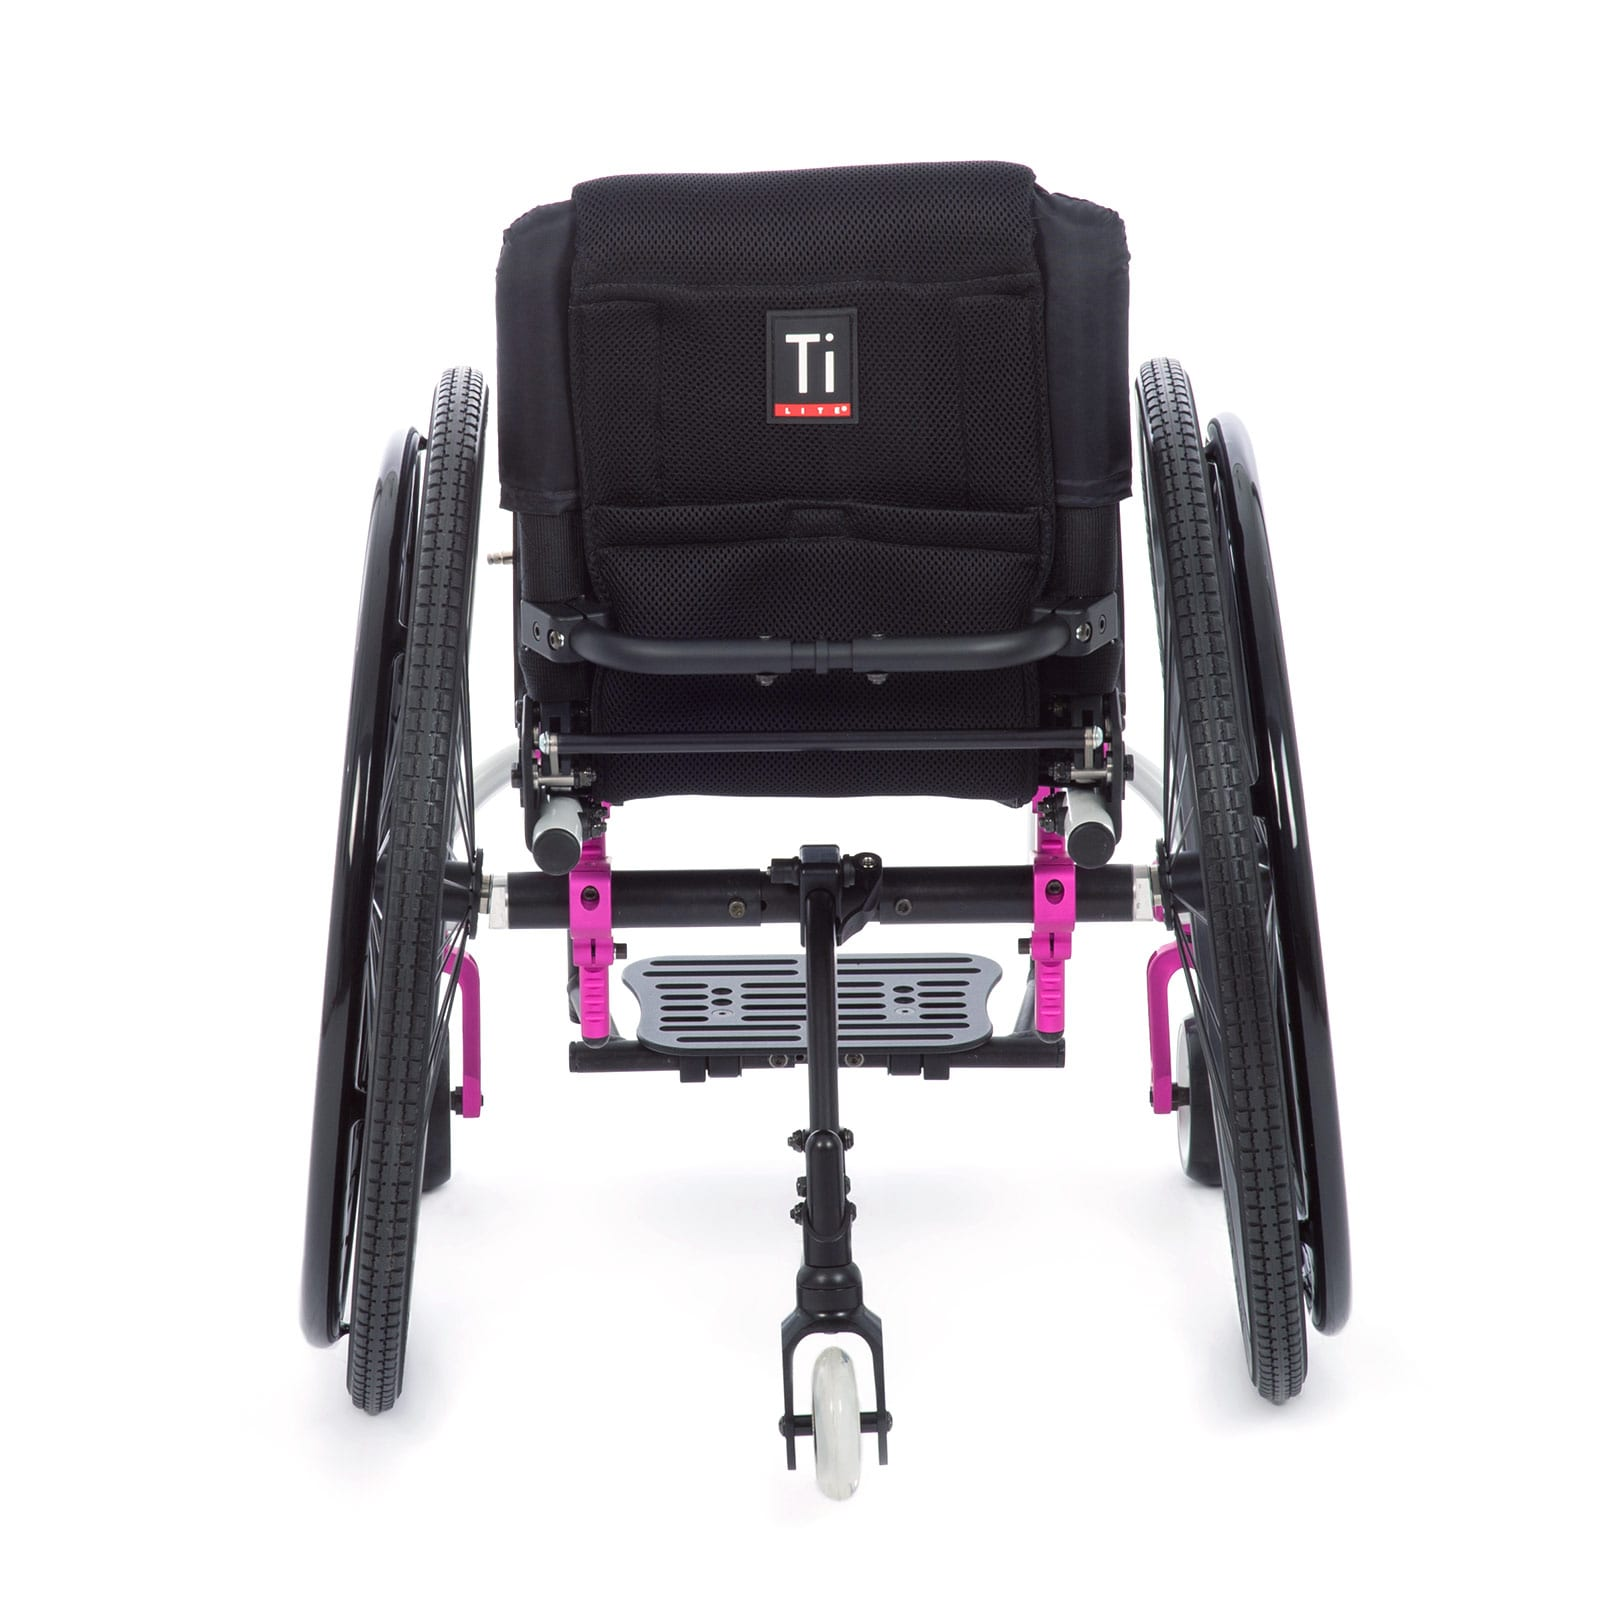 The Pink Full Back view of the Wheelchair